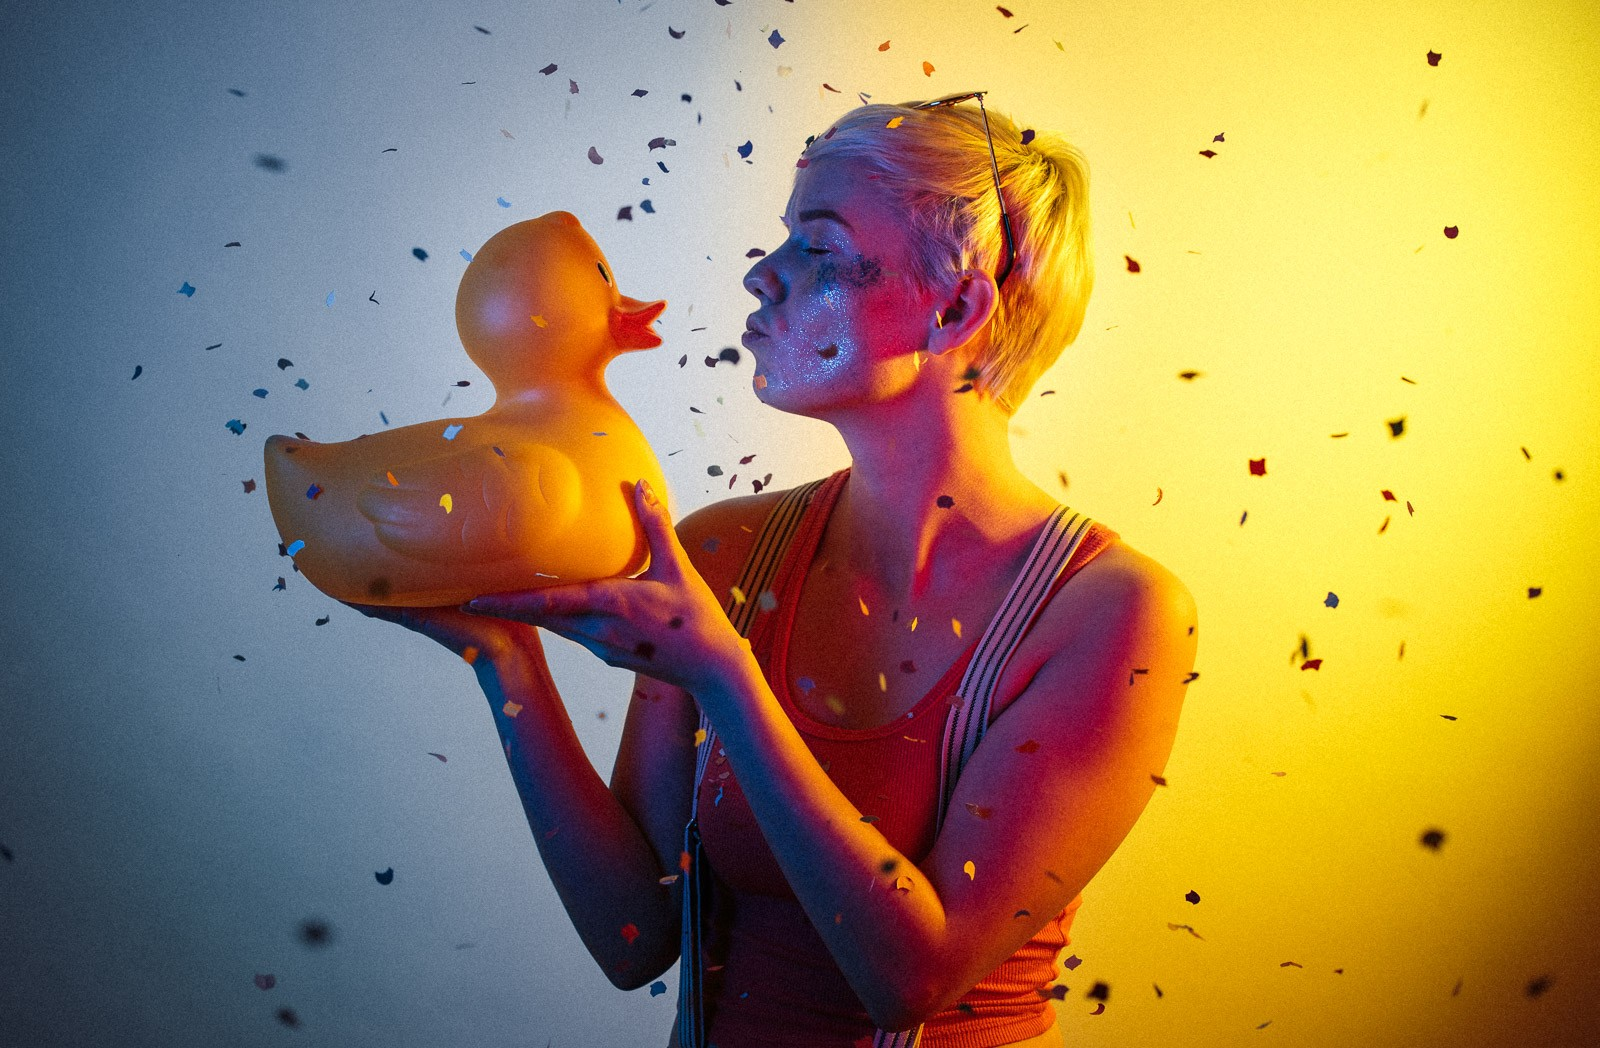 portrait of young woman with short hair wearing sunglasses and holding rubber duck with yellow and blue studio light